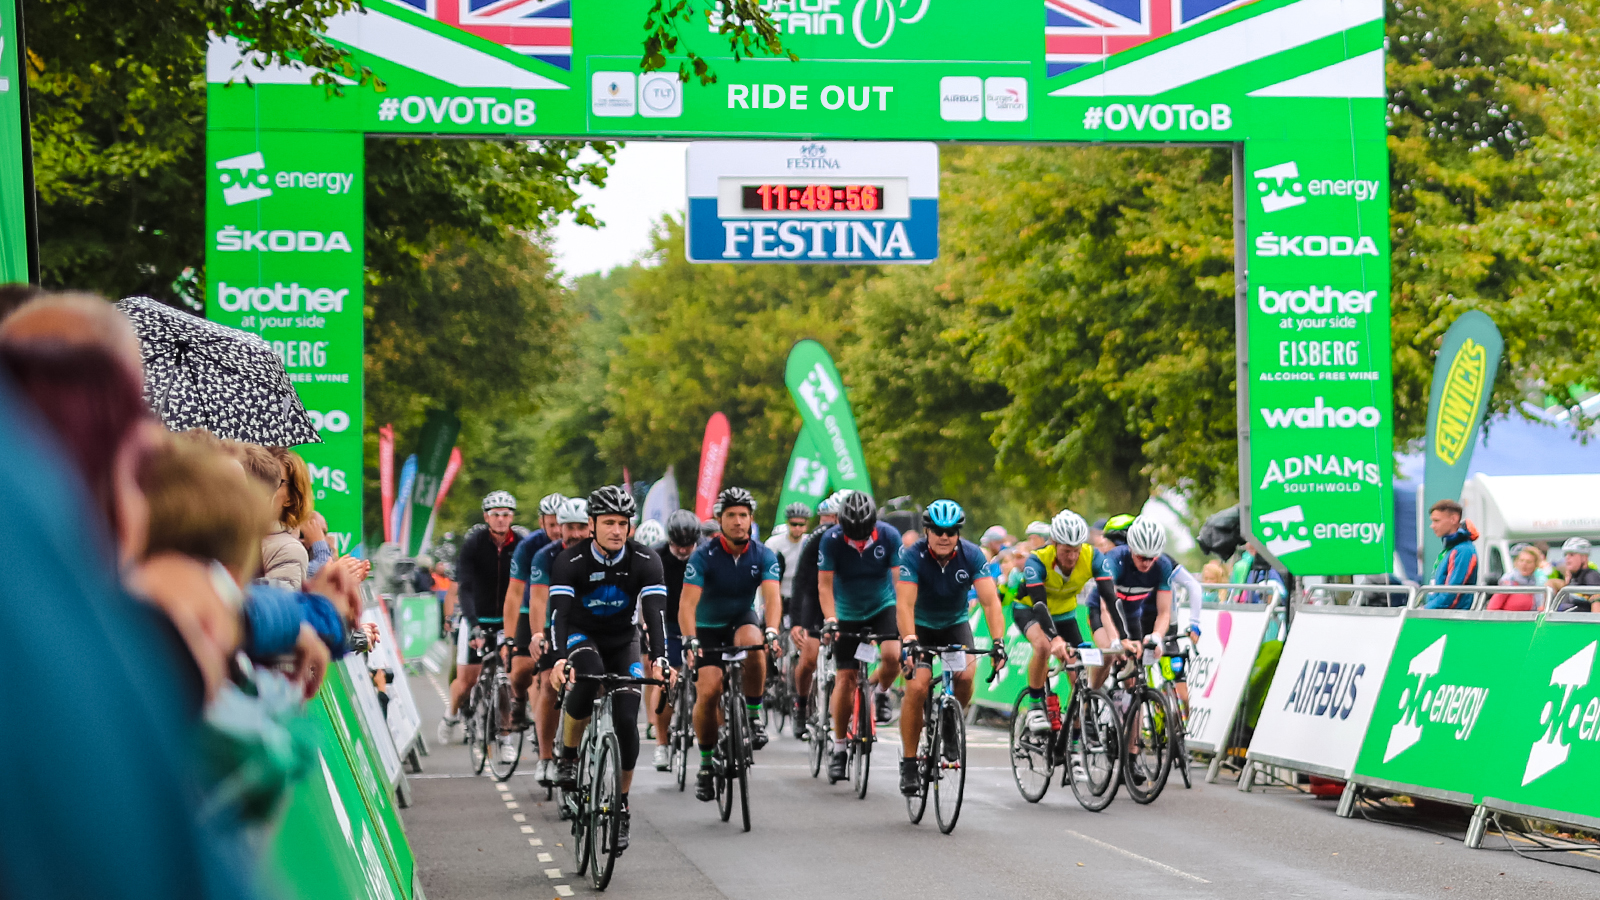 Tour of Britain Ride Out